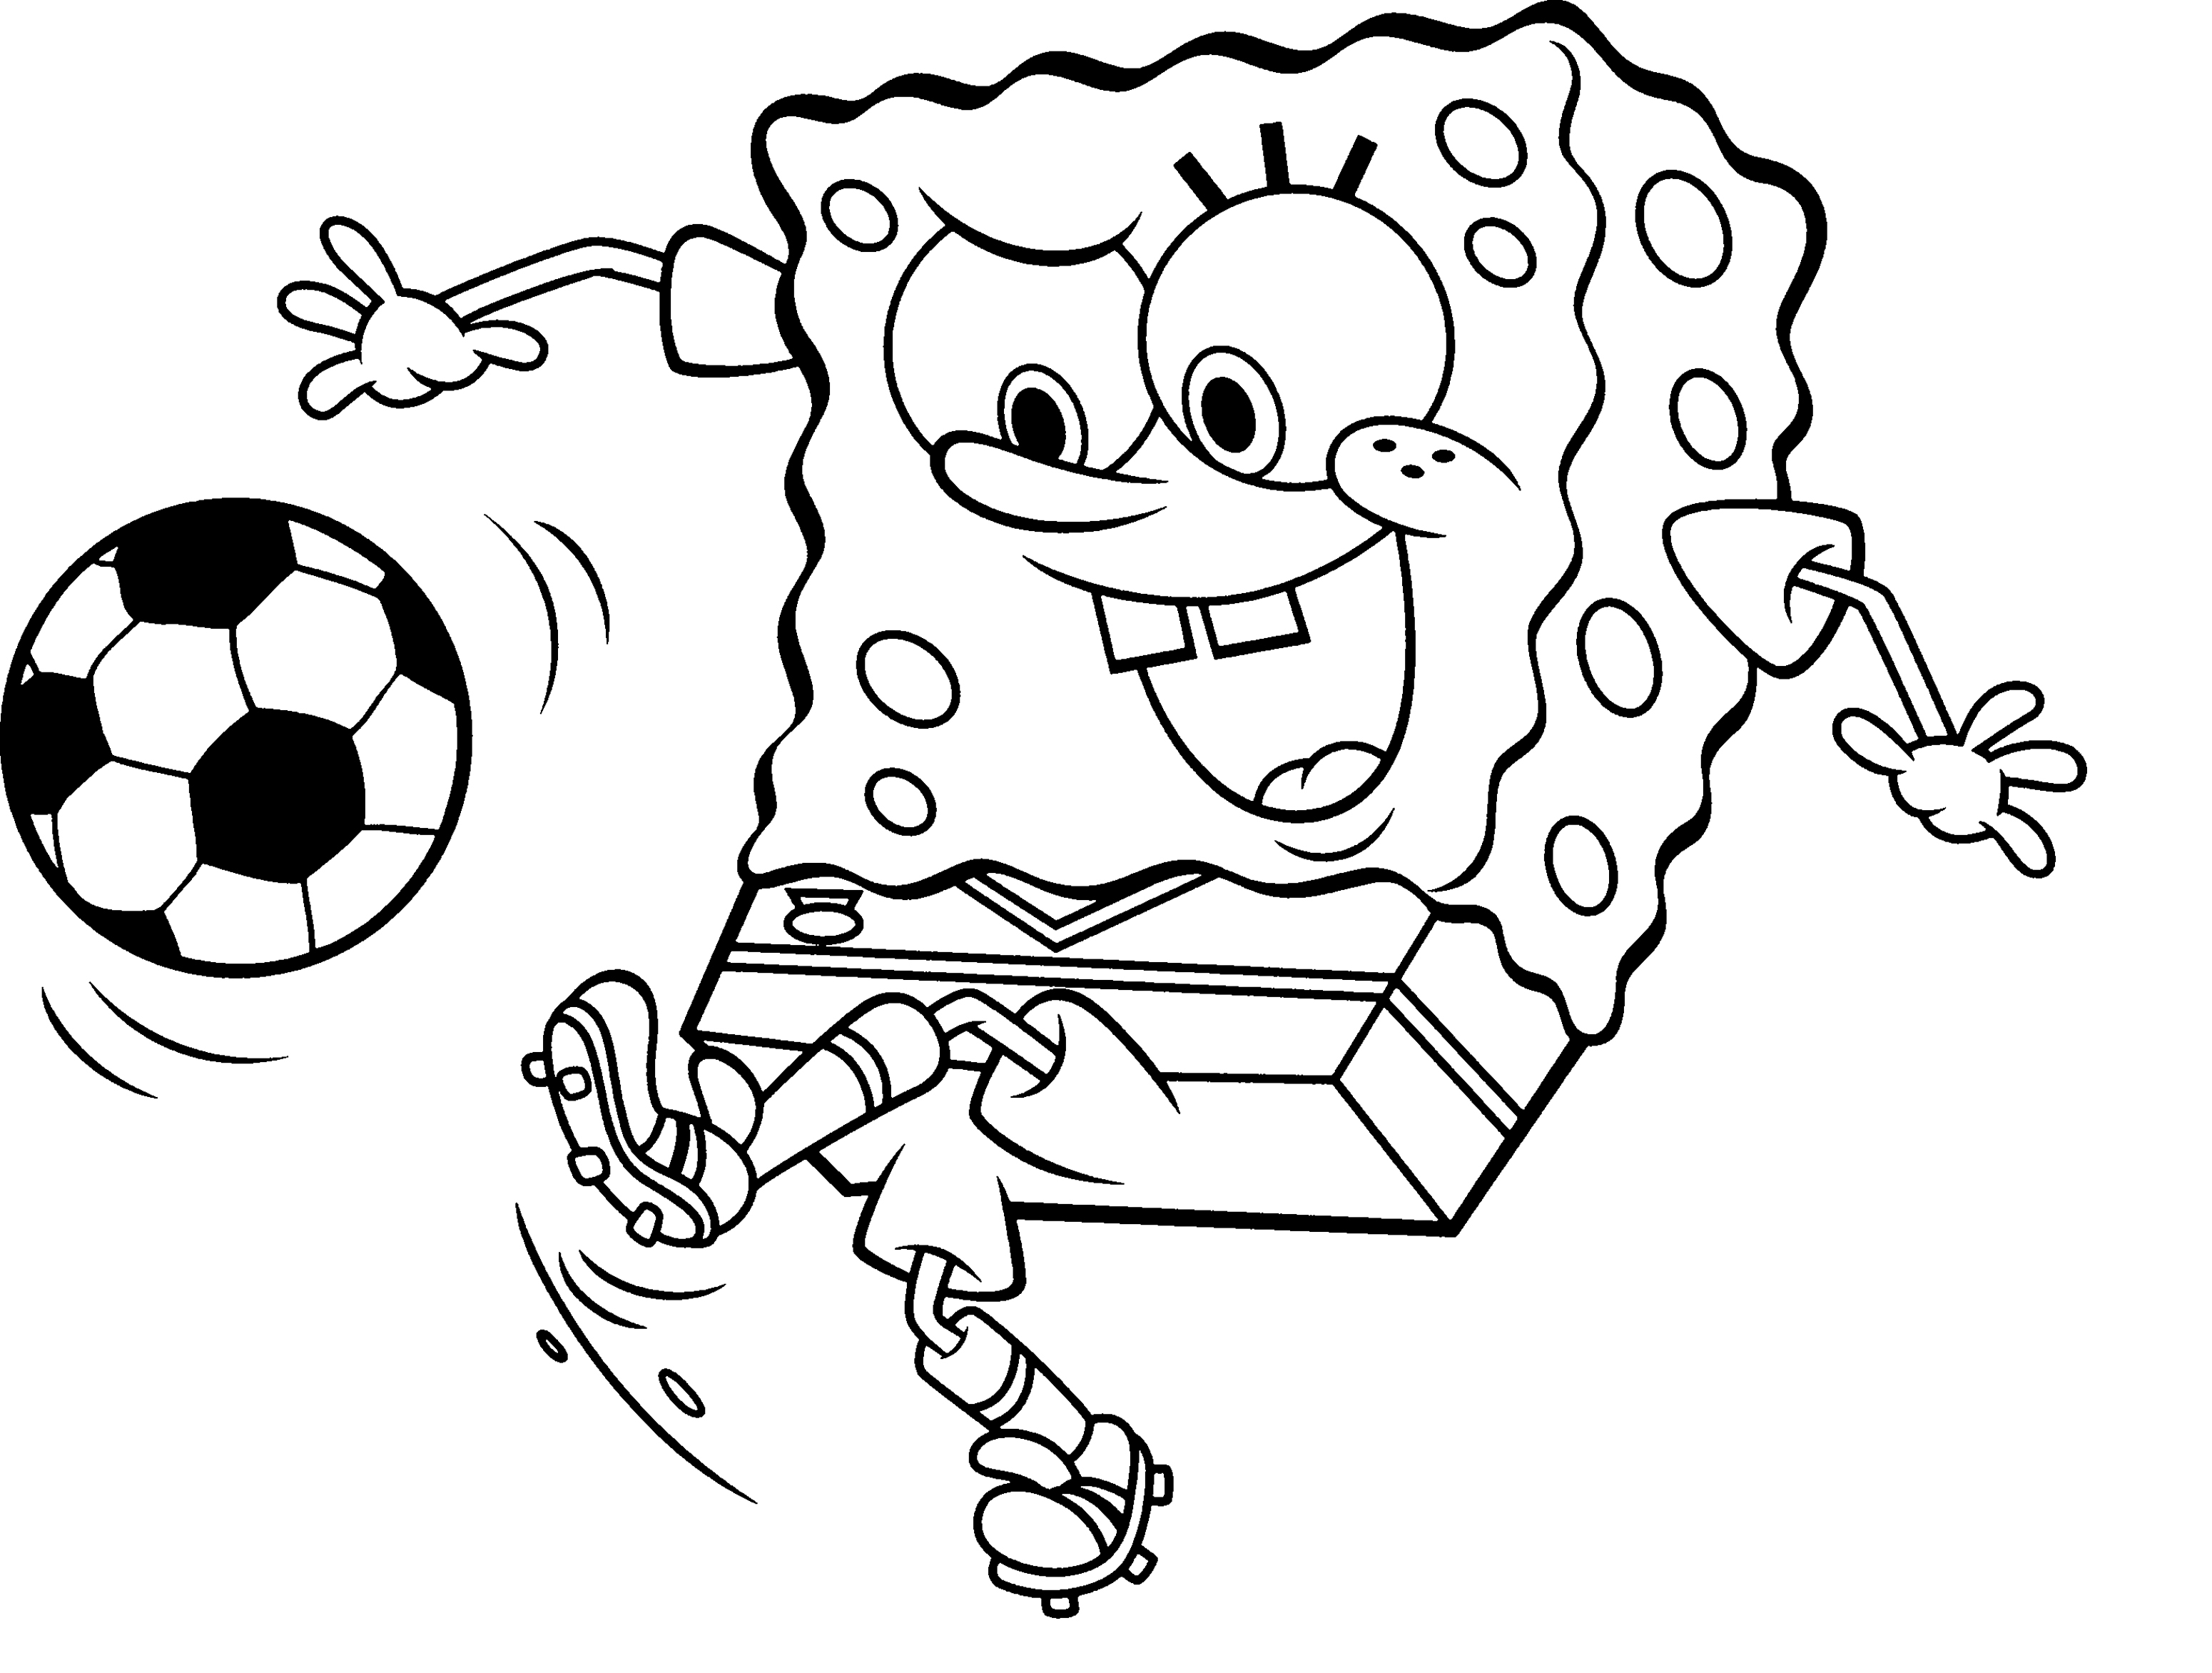 3100x2344 Tremendous Football Colouring Sheets Printable